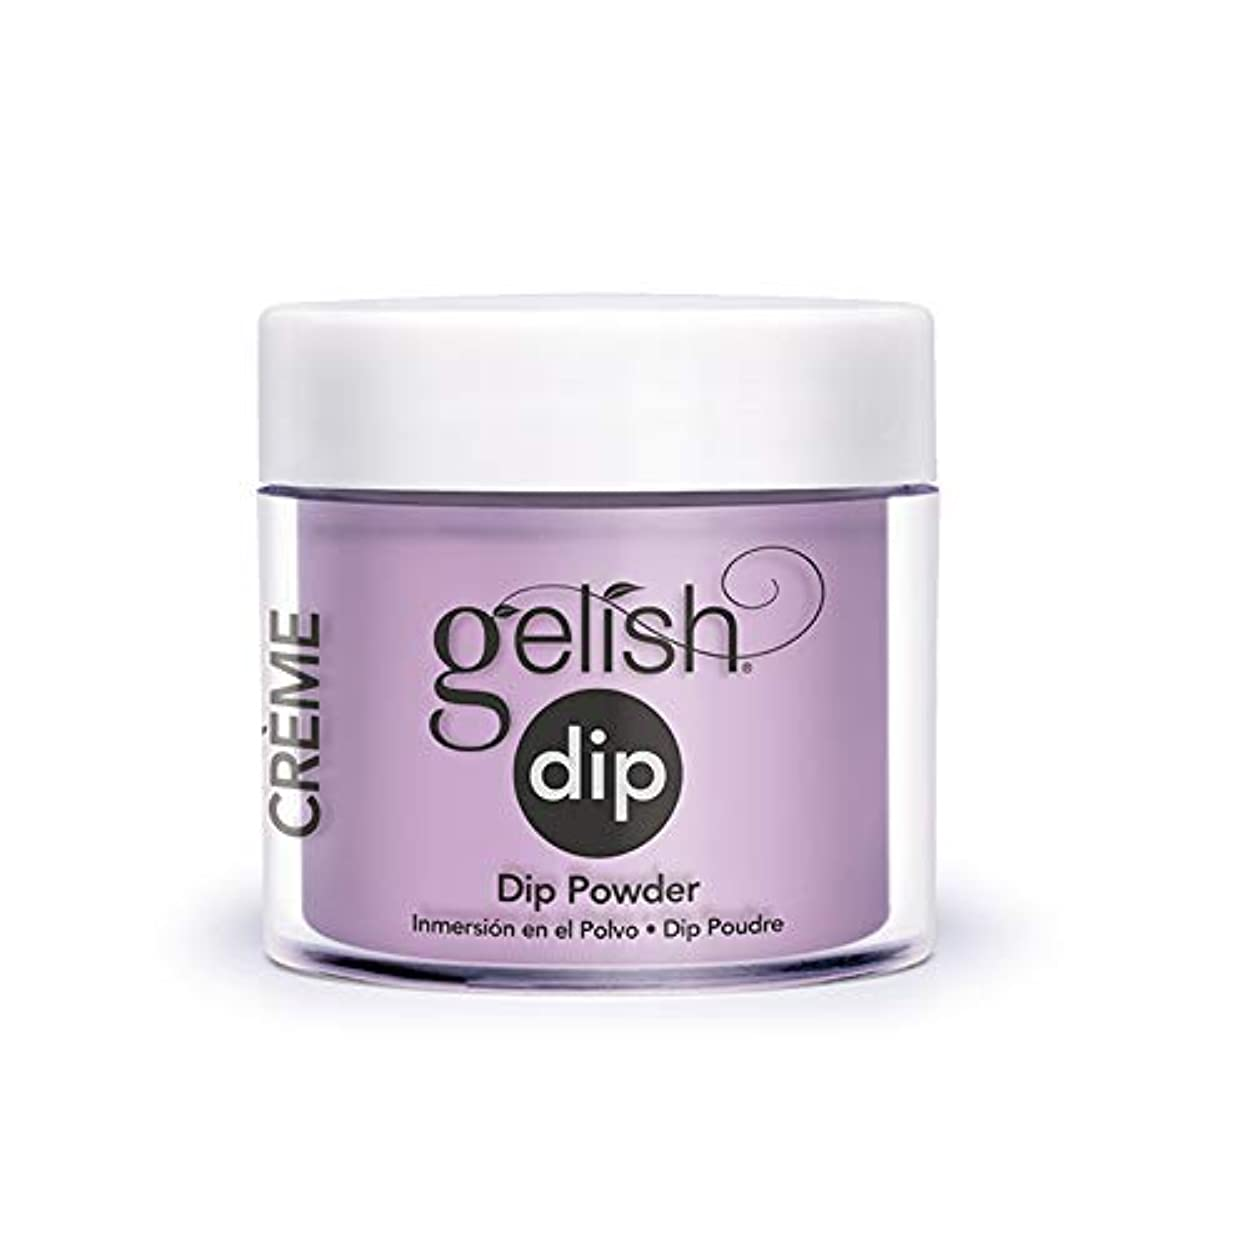 ラダ落とし穴王朝Harmony Gelish - Acrylic Dip Powder - Dress Up - 23g / 0.8oz